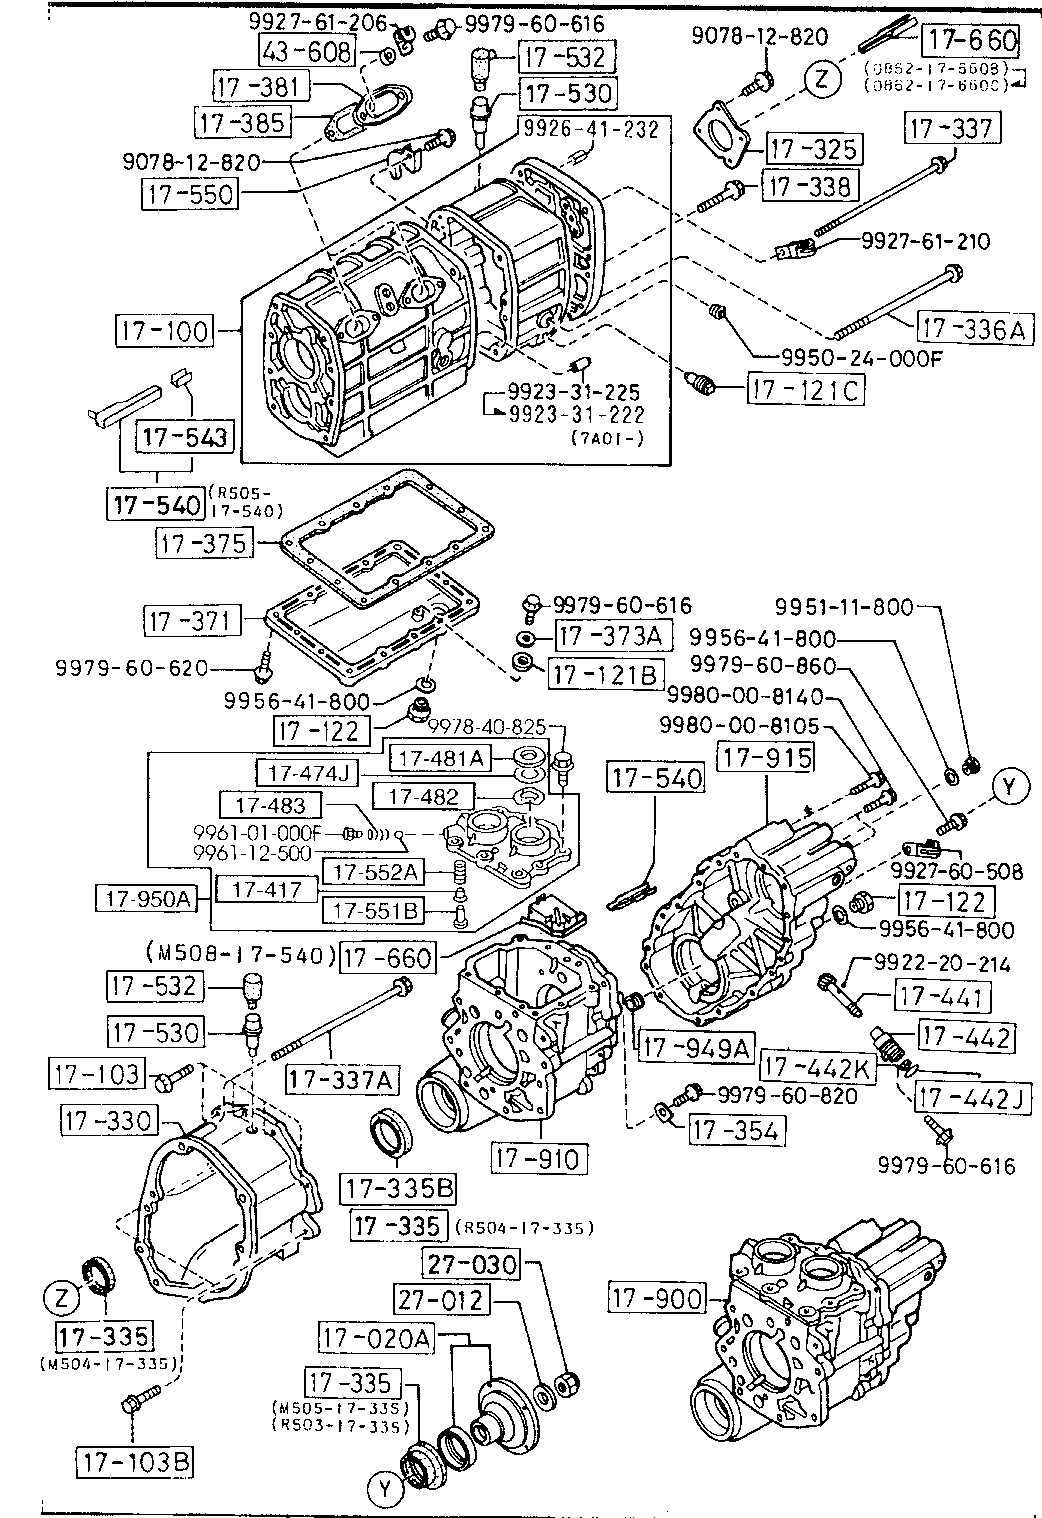 Honda Gx630 Wiring Help All Kind Of Diagrams 1989 Mazda B2200 Engine Parts Diagram Schematic U2022 For Free Ignition